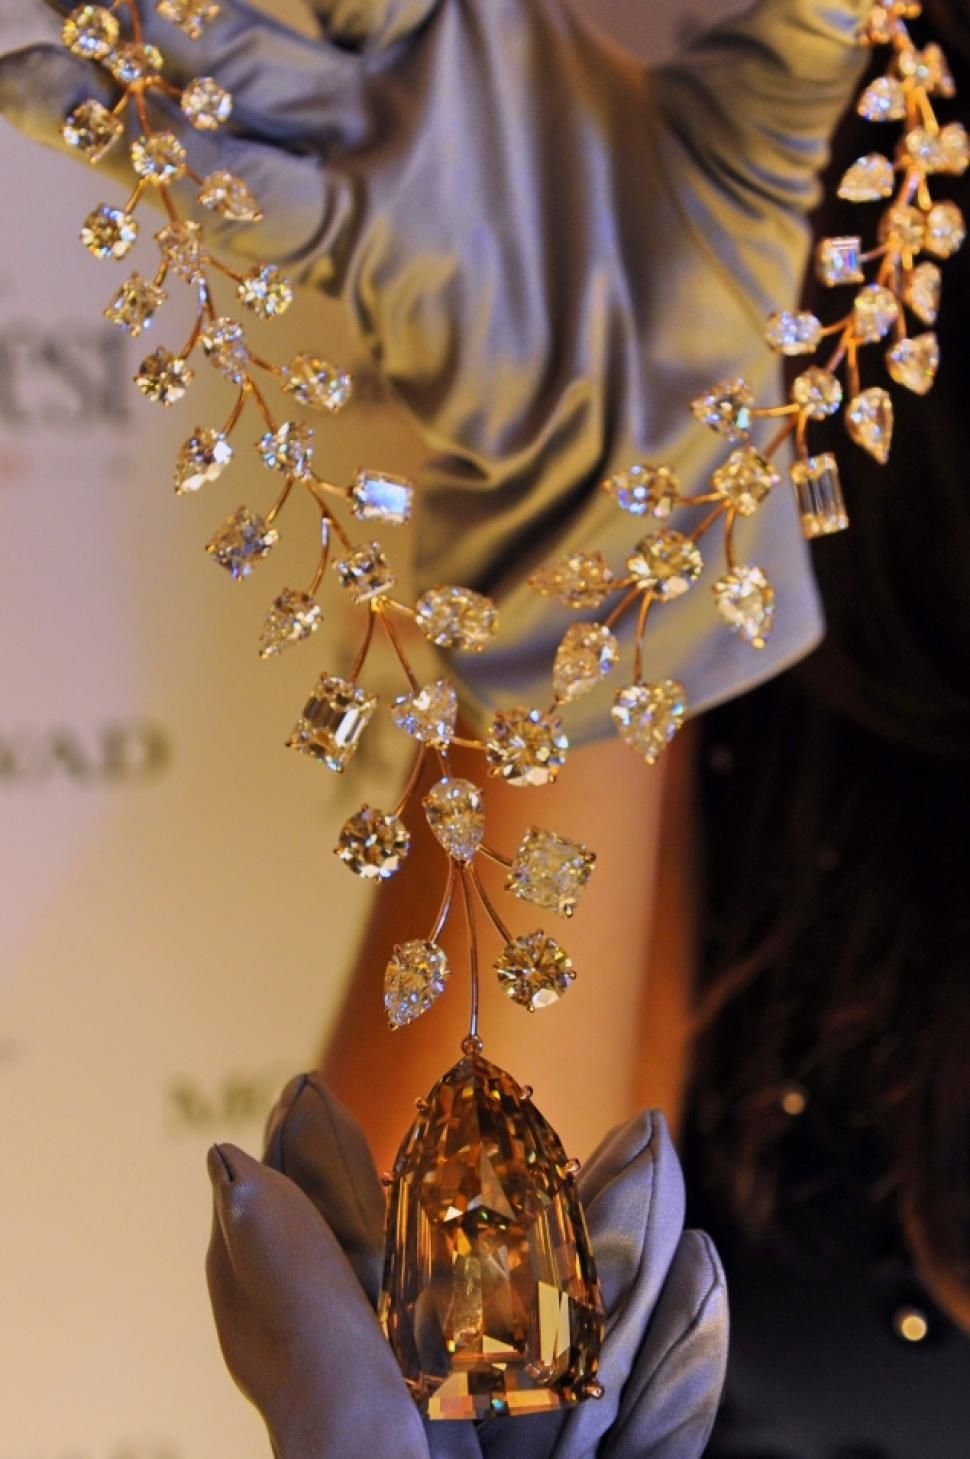 World S Largest Diamond Necklace On Sale In Singapore For 55 Million Expensive Necklaces Expensive Diamond Diamond